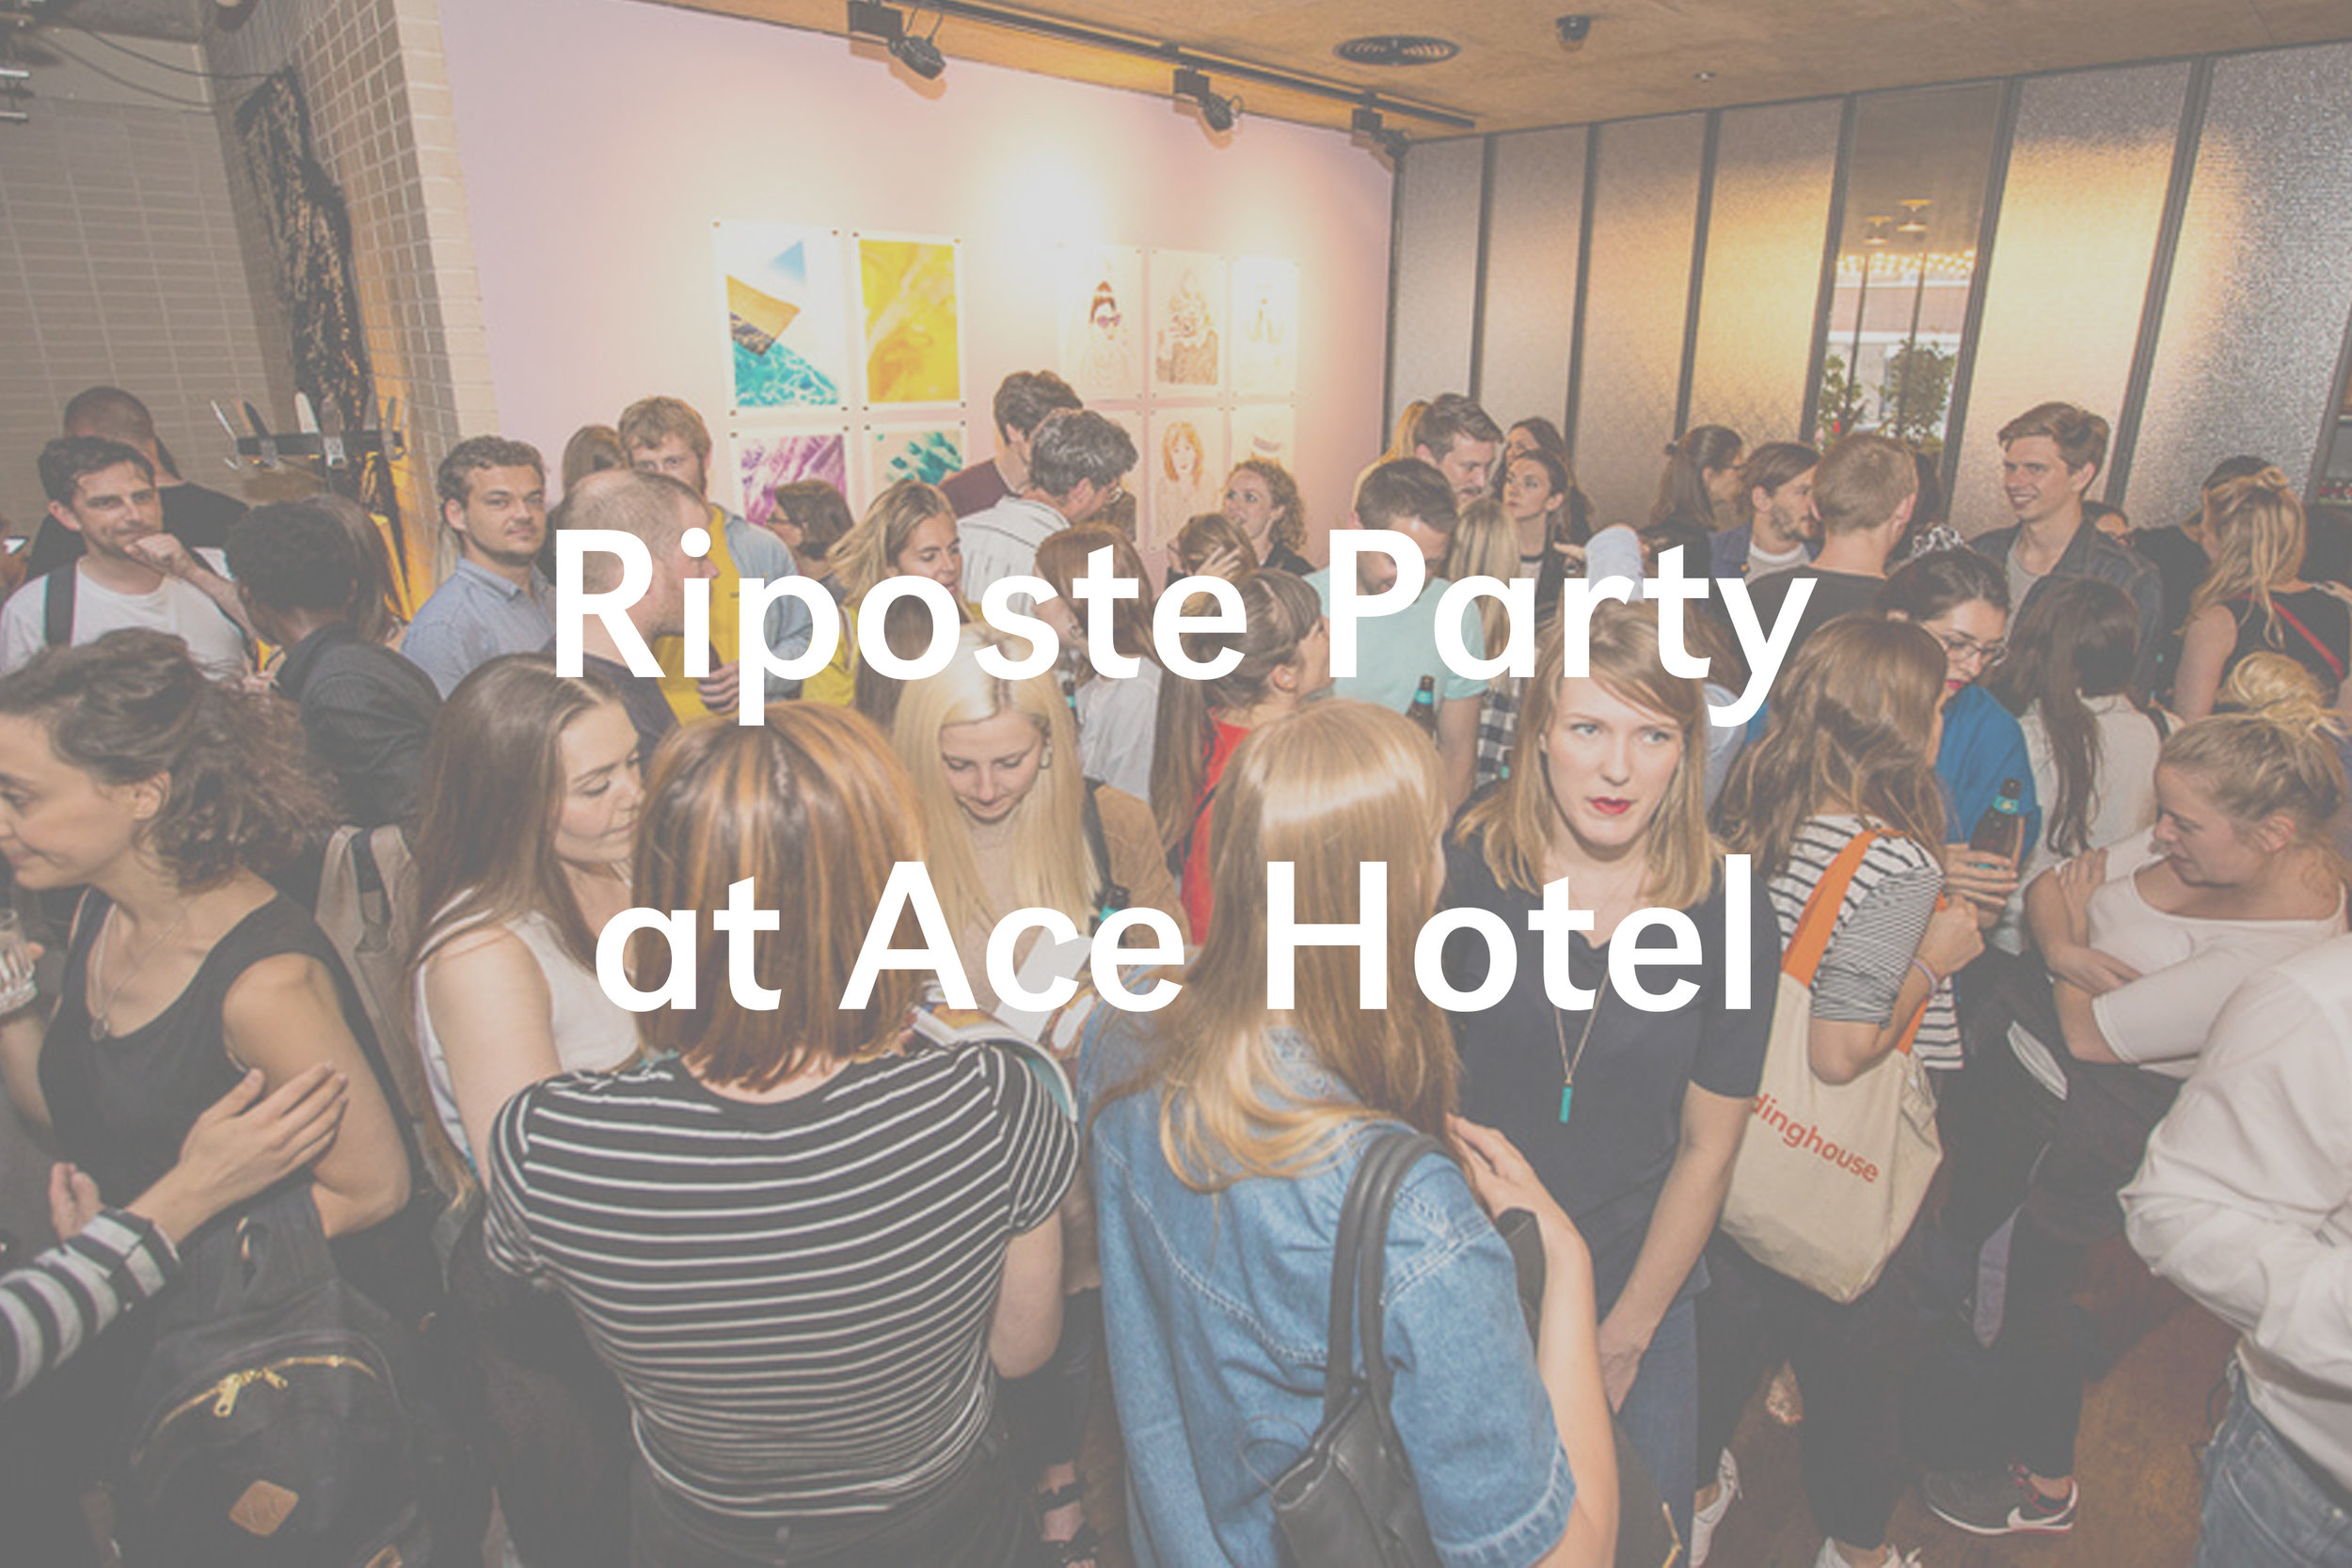 Riposte Summer Party at Ace Hotel